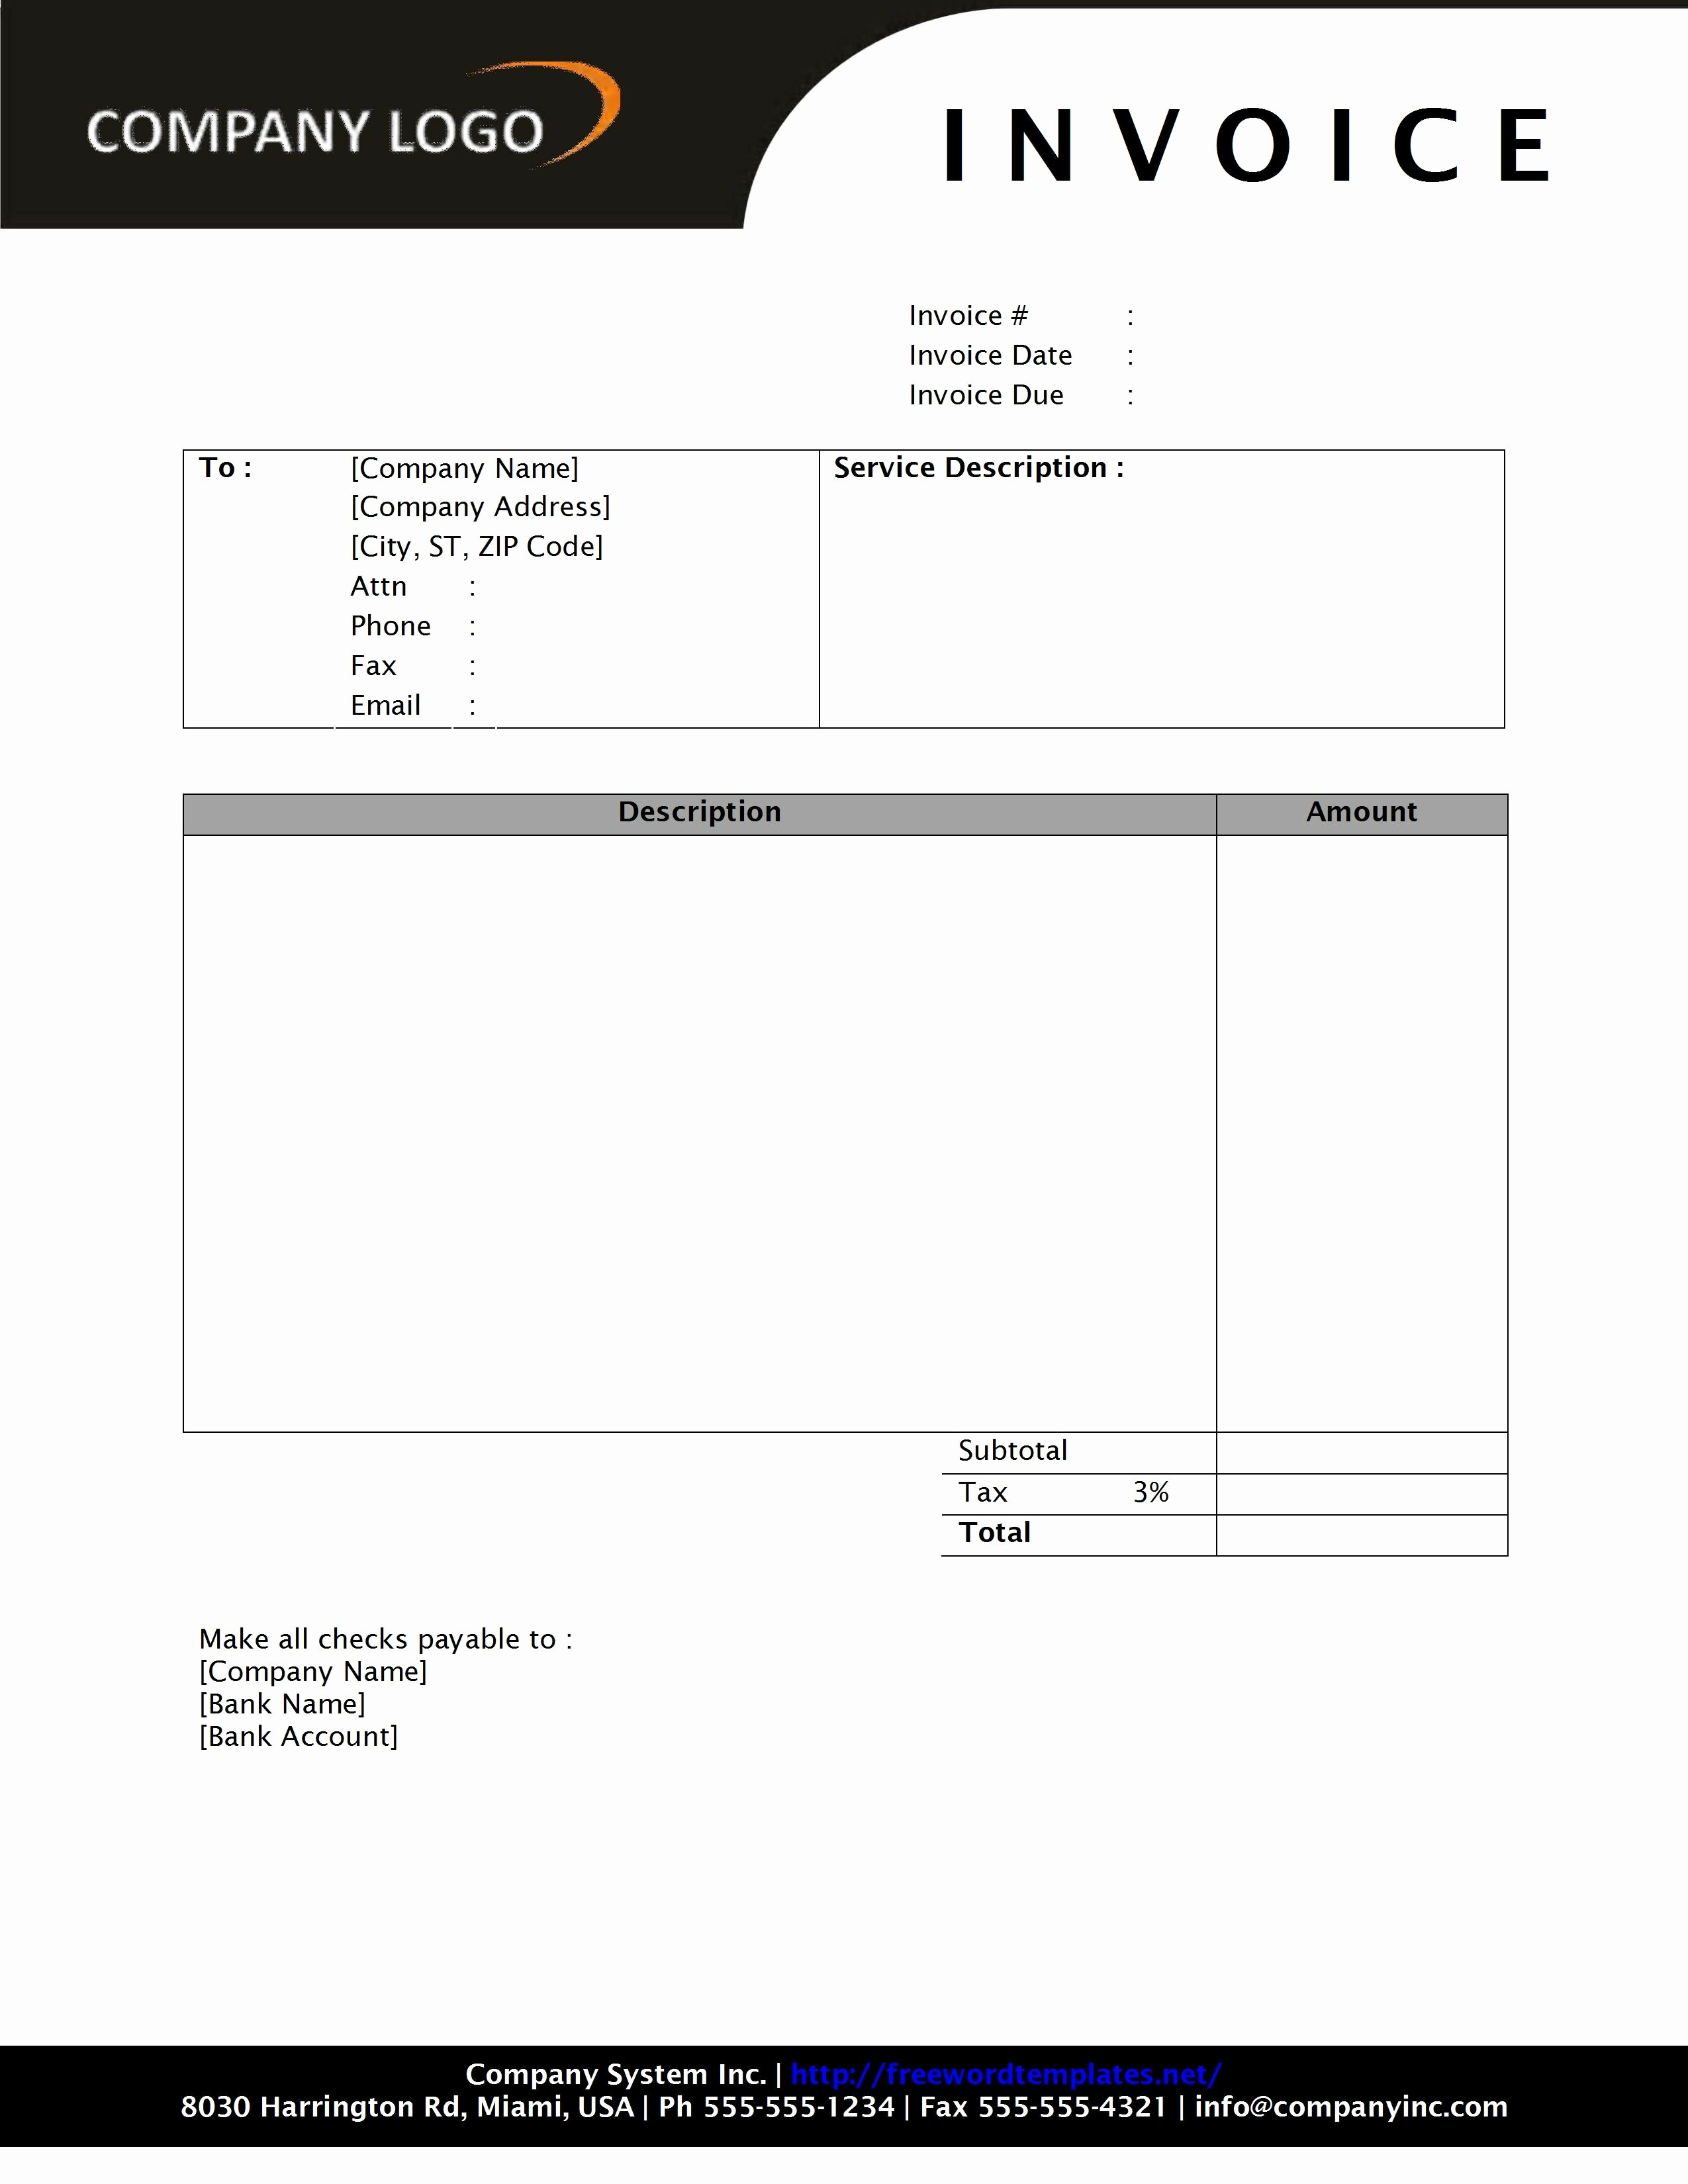 Free Service Invoice Template Download Awesome Invoice Template Word 2010